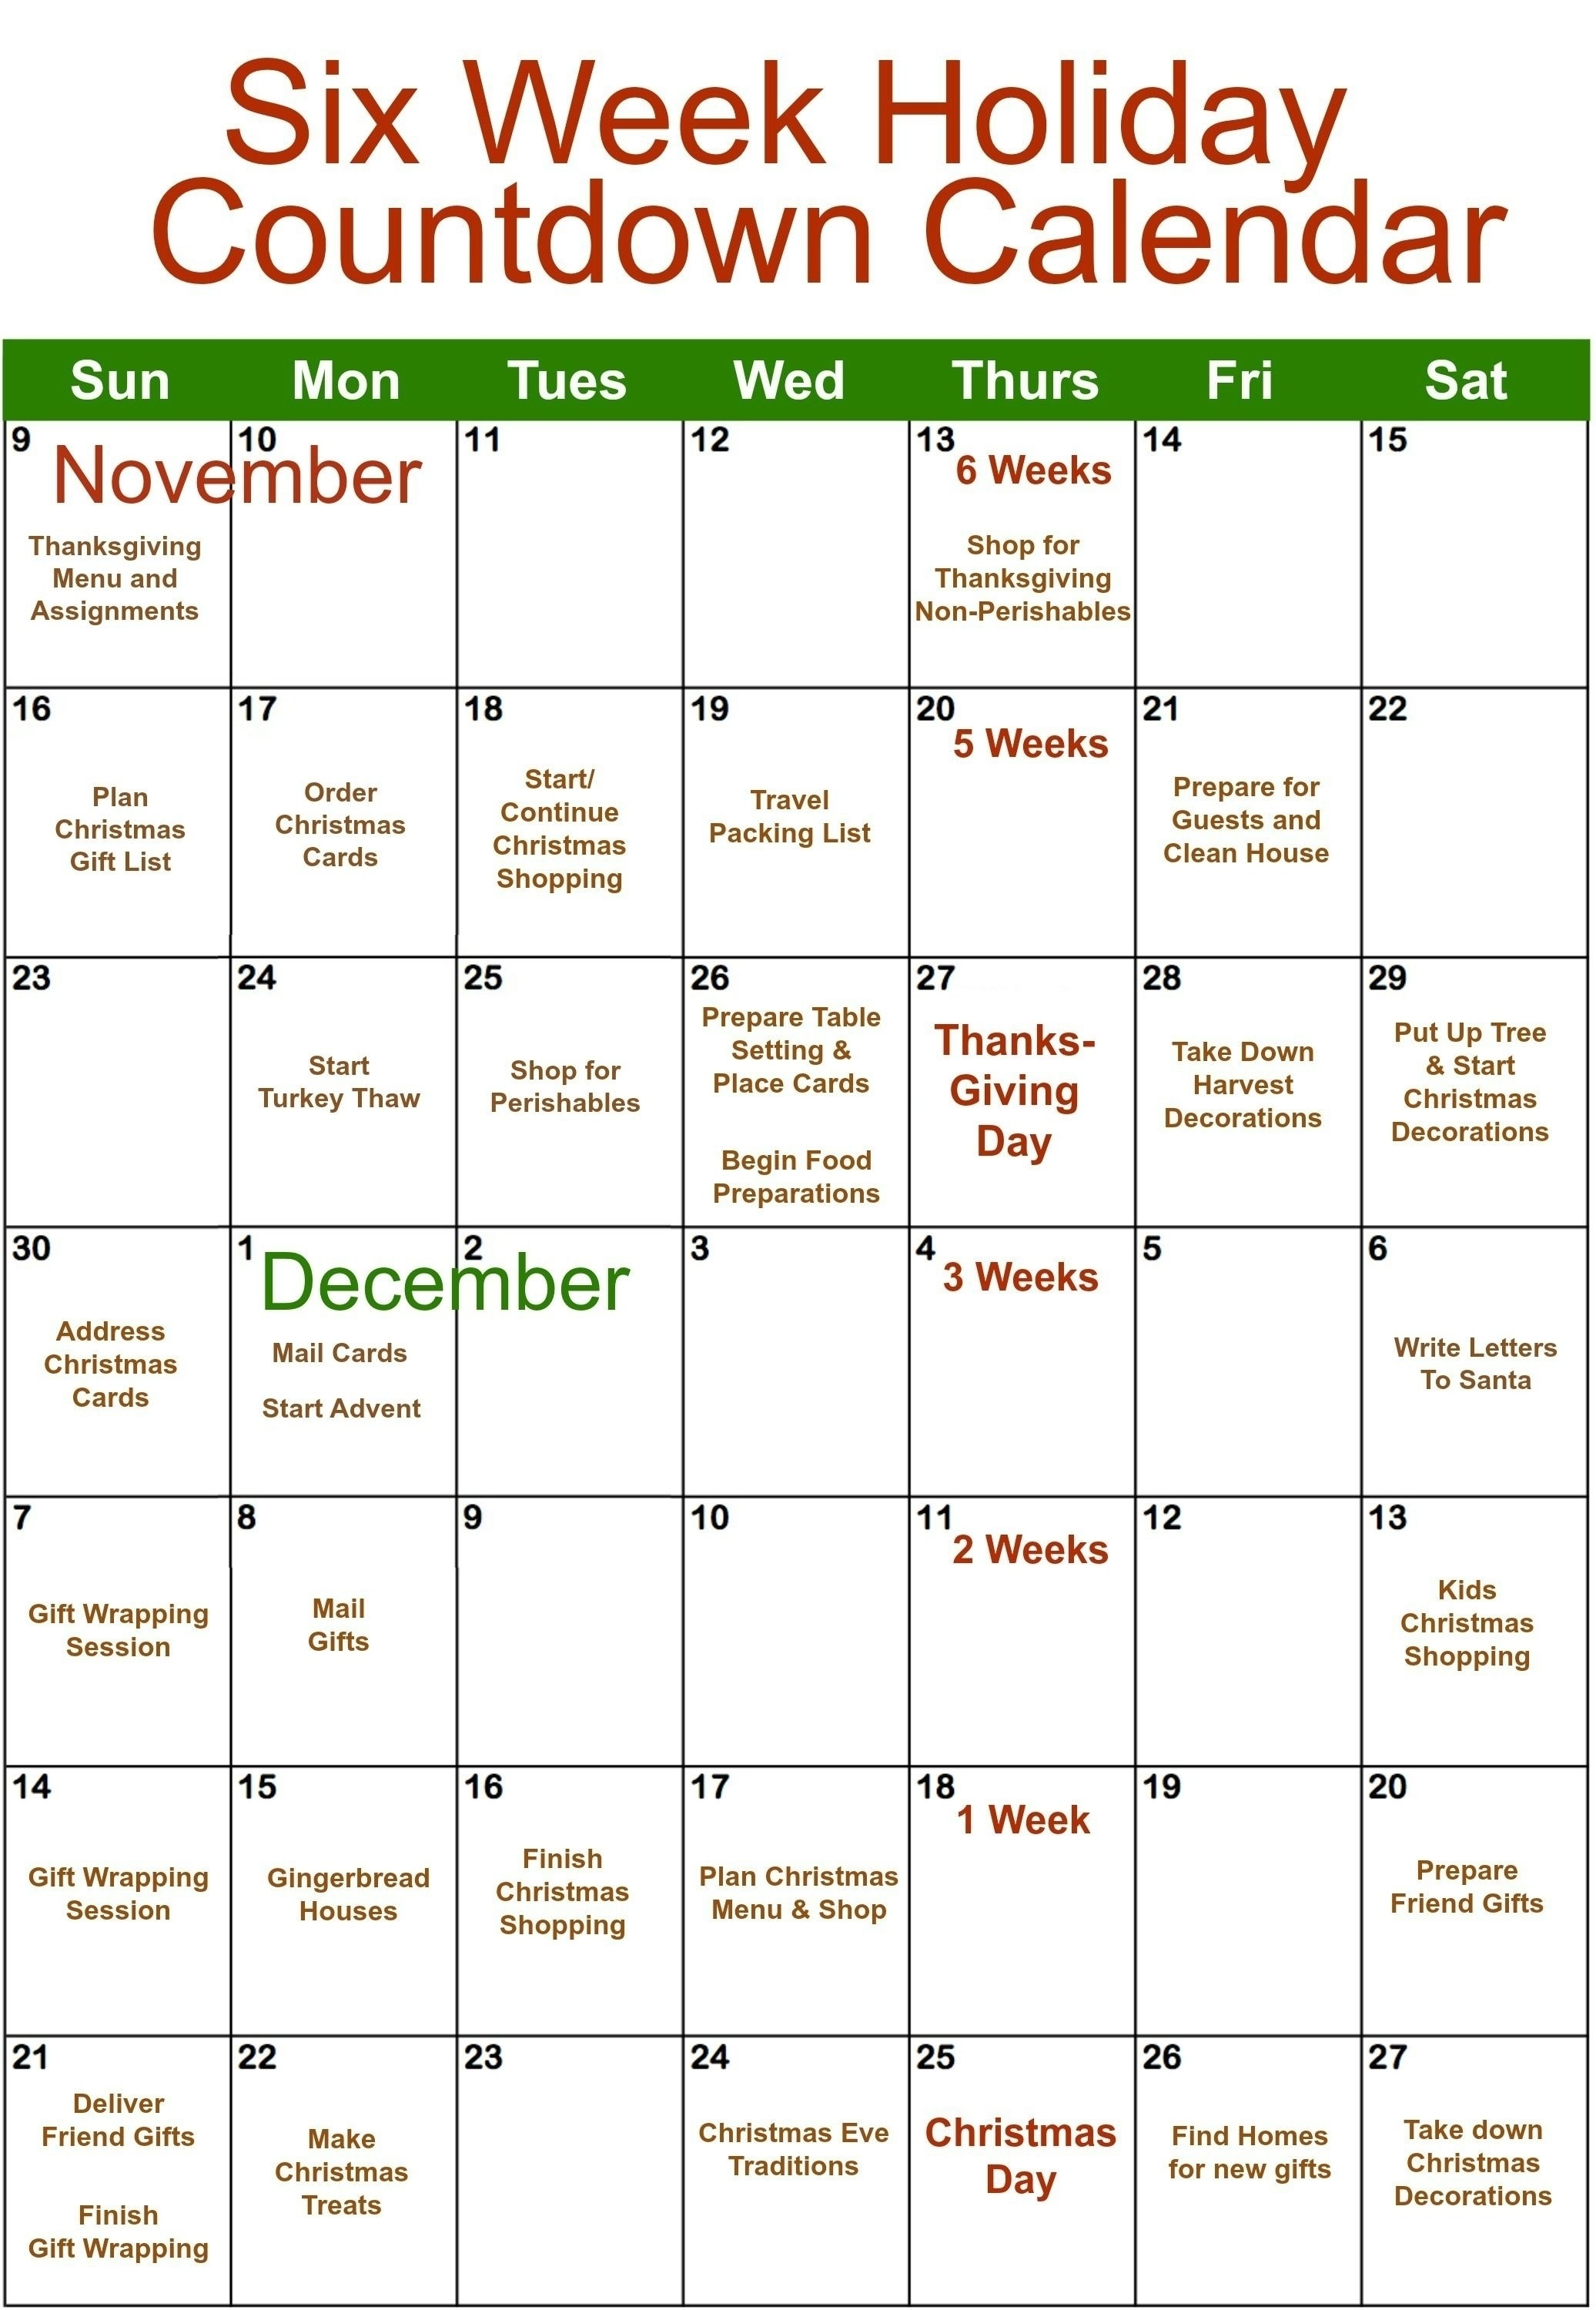 6 Week Countdown Calendar | One Page Calendar Printable-Microsoft Template Calendar Coundown